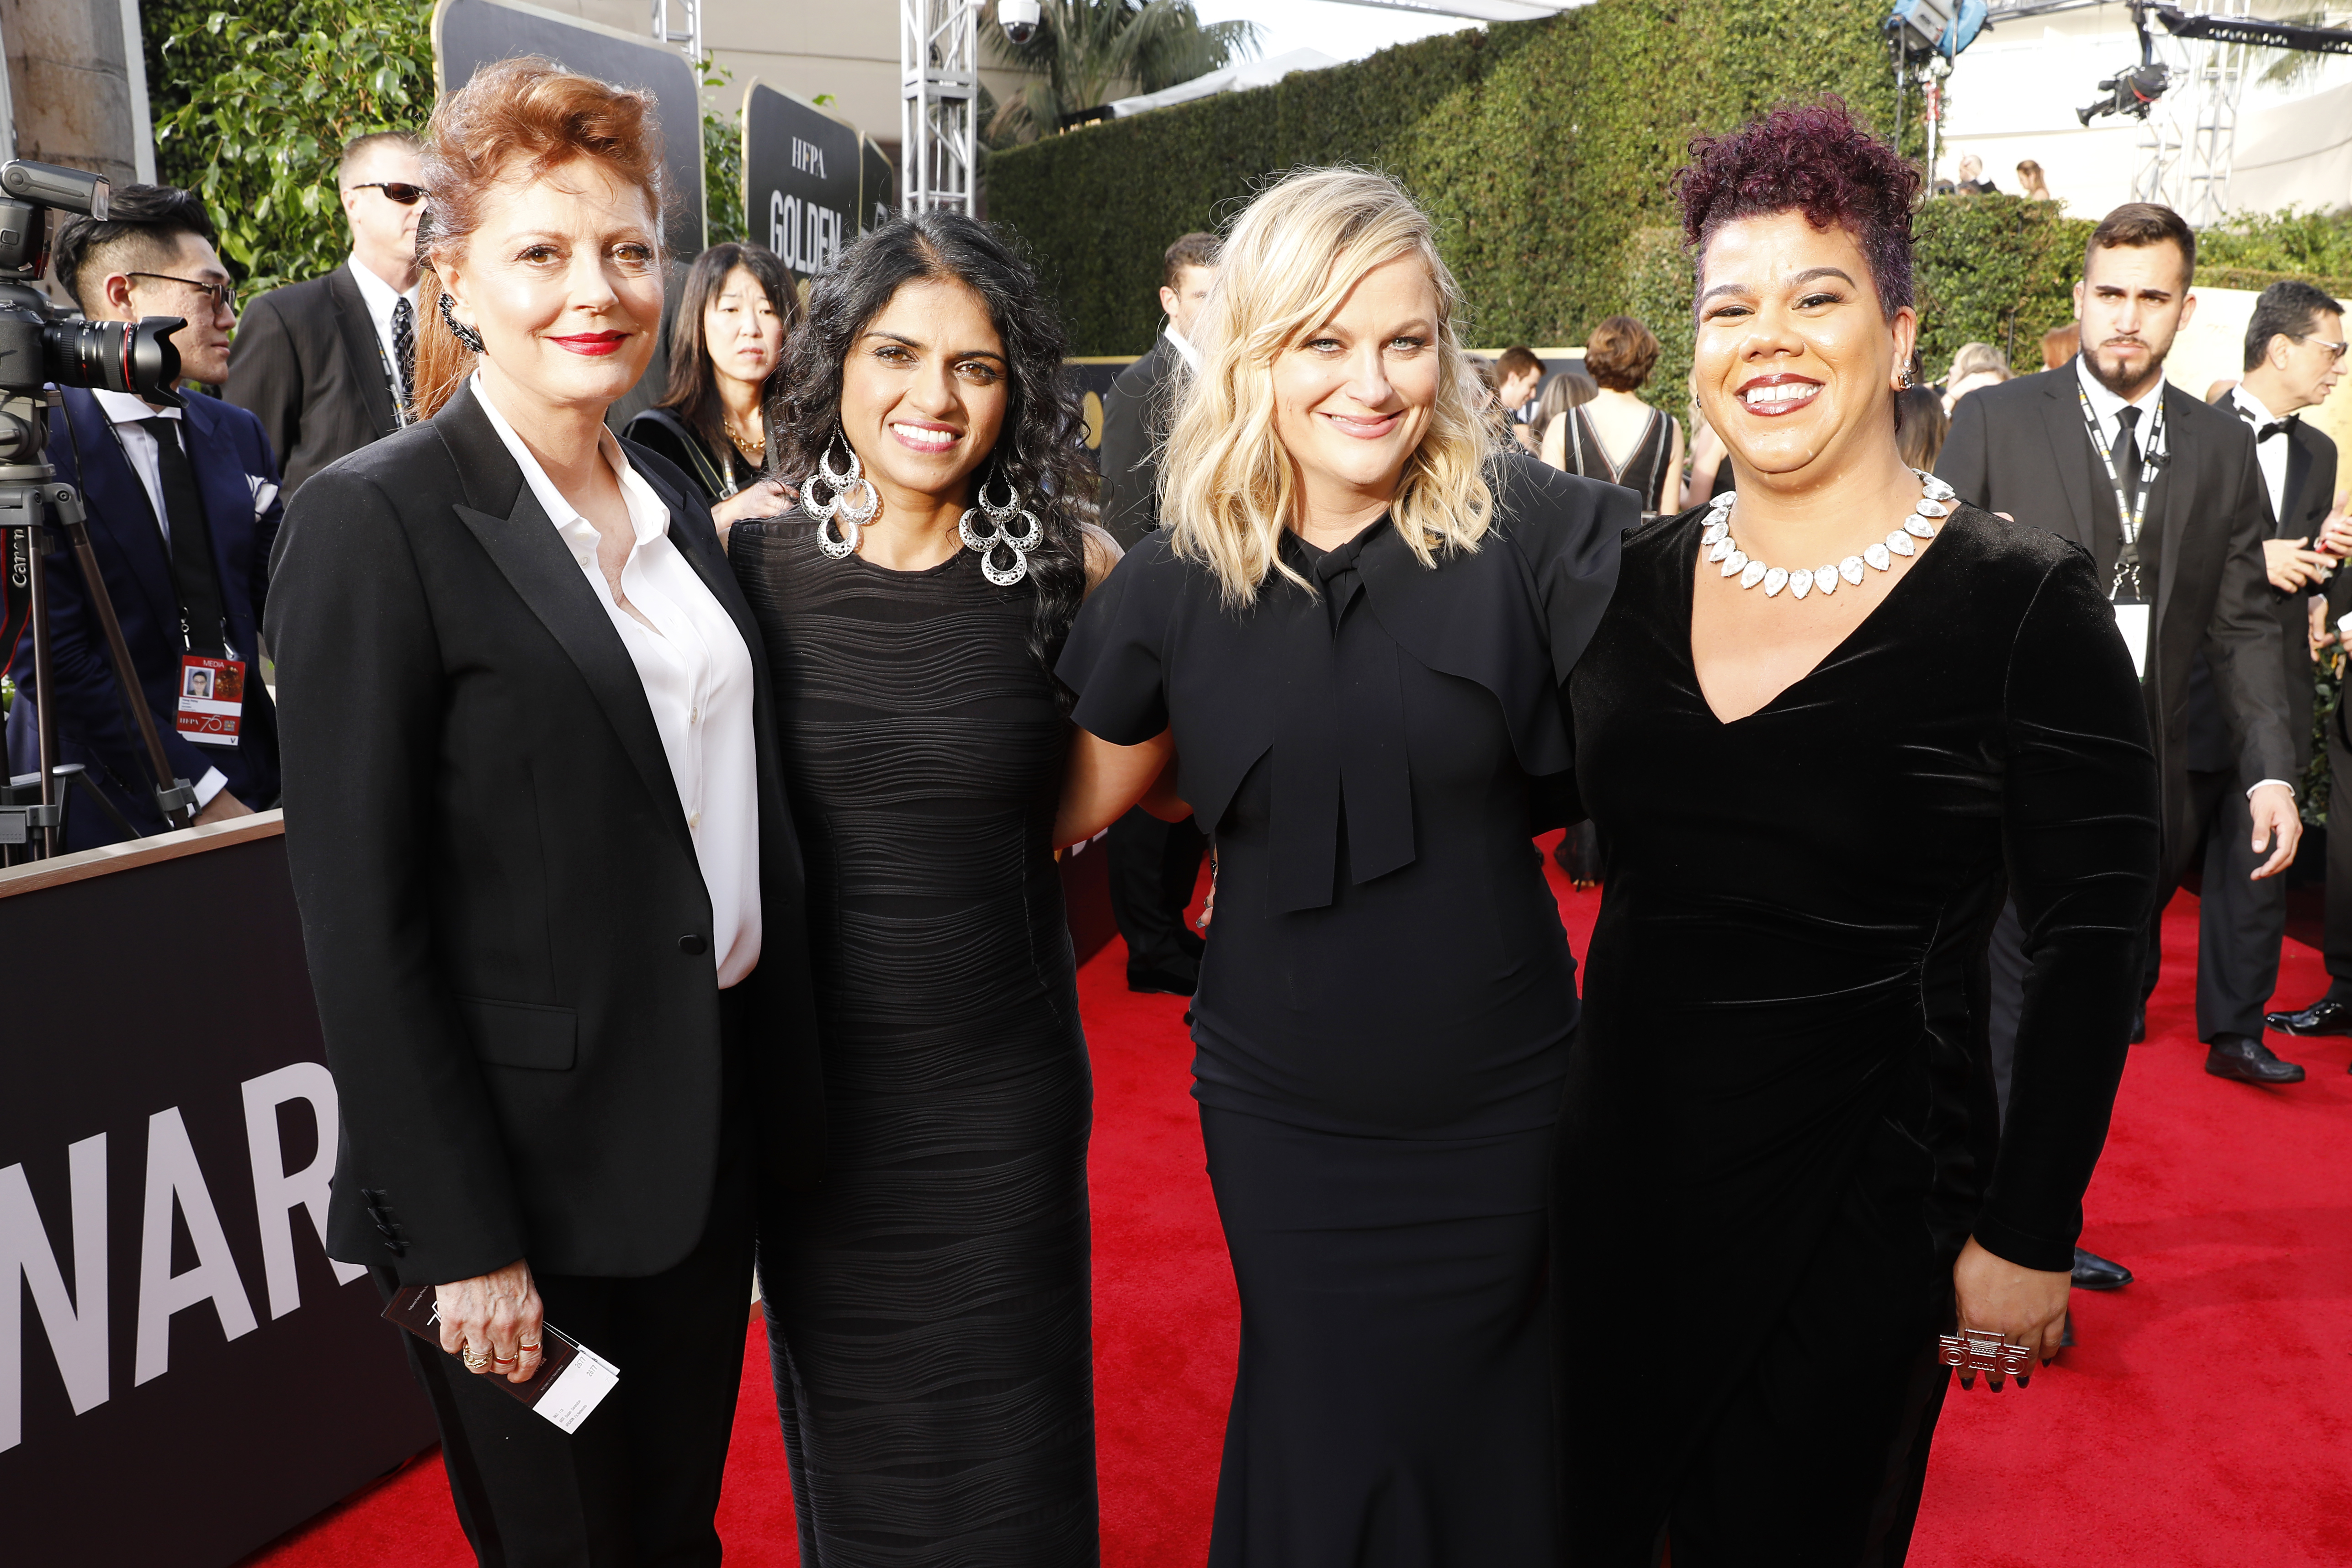 Actors and activists support the #MeToo/Time's Up movements at the Golden Globes. The 2018 Oscars are this Sunday.